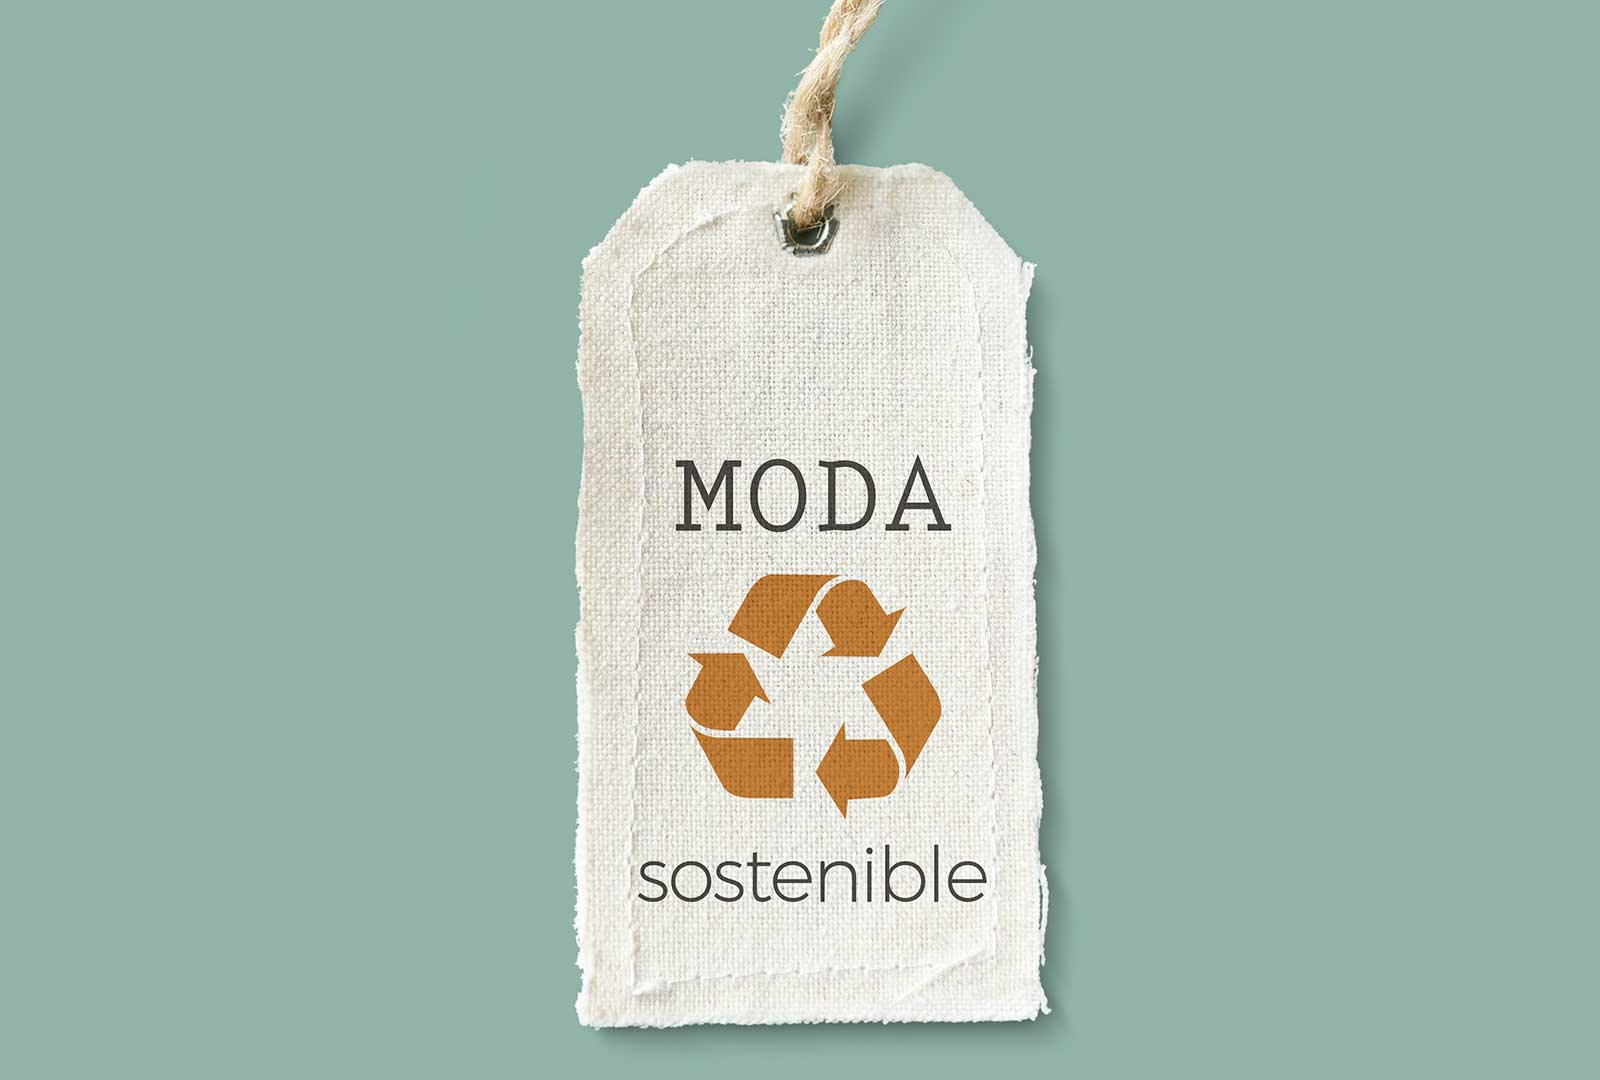 Photo of Moda sostenible